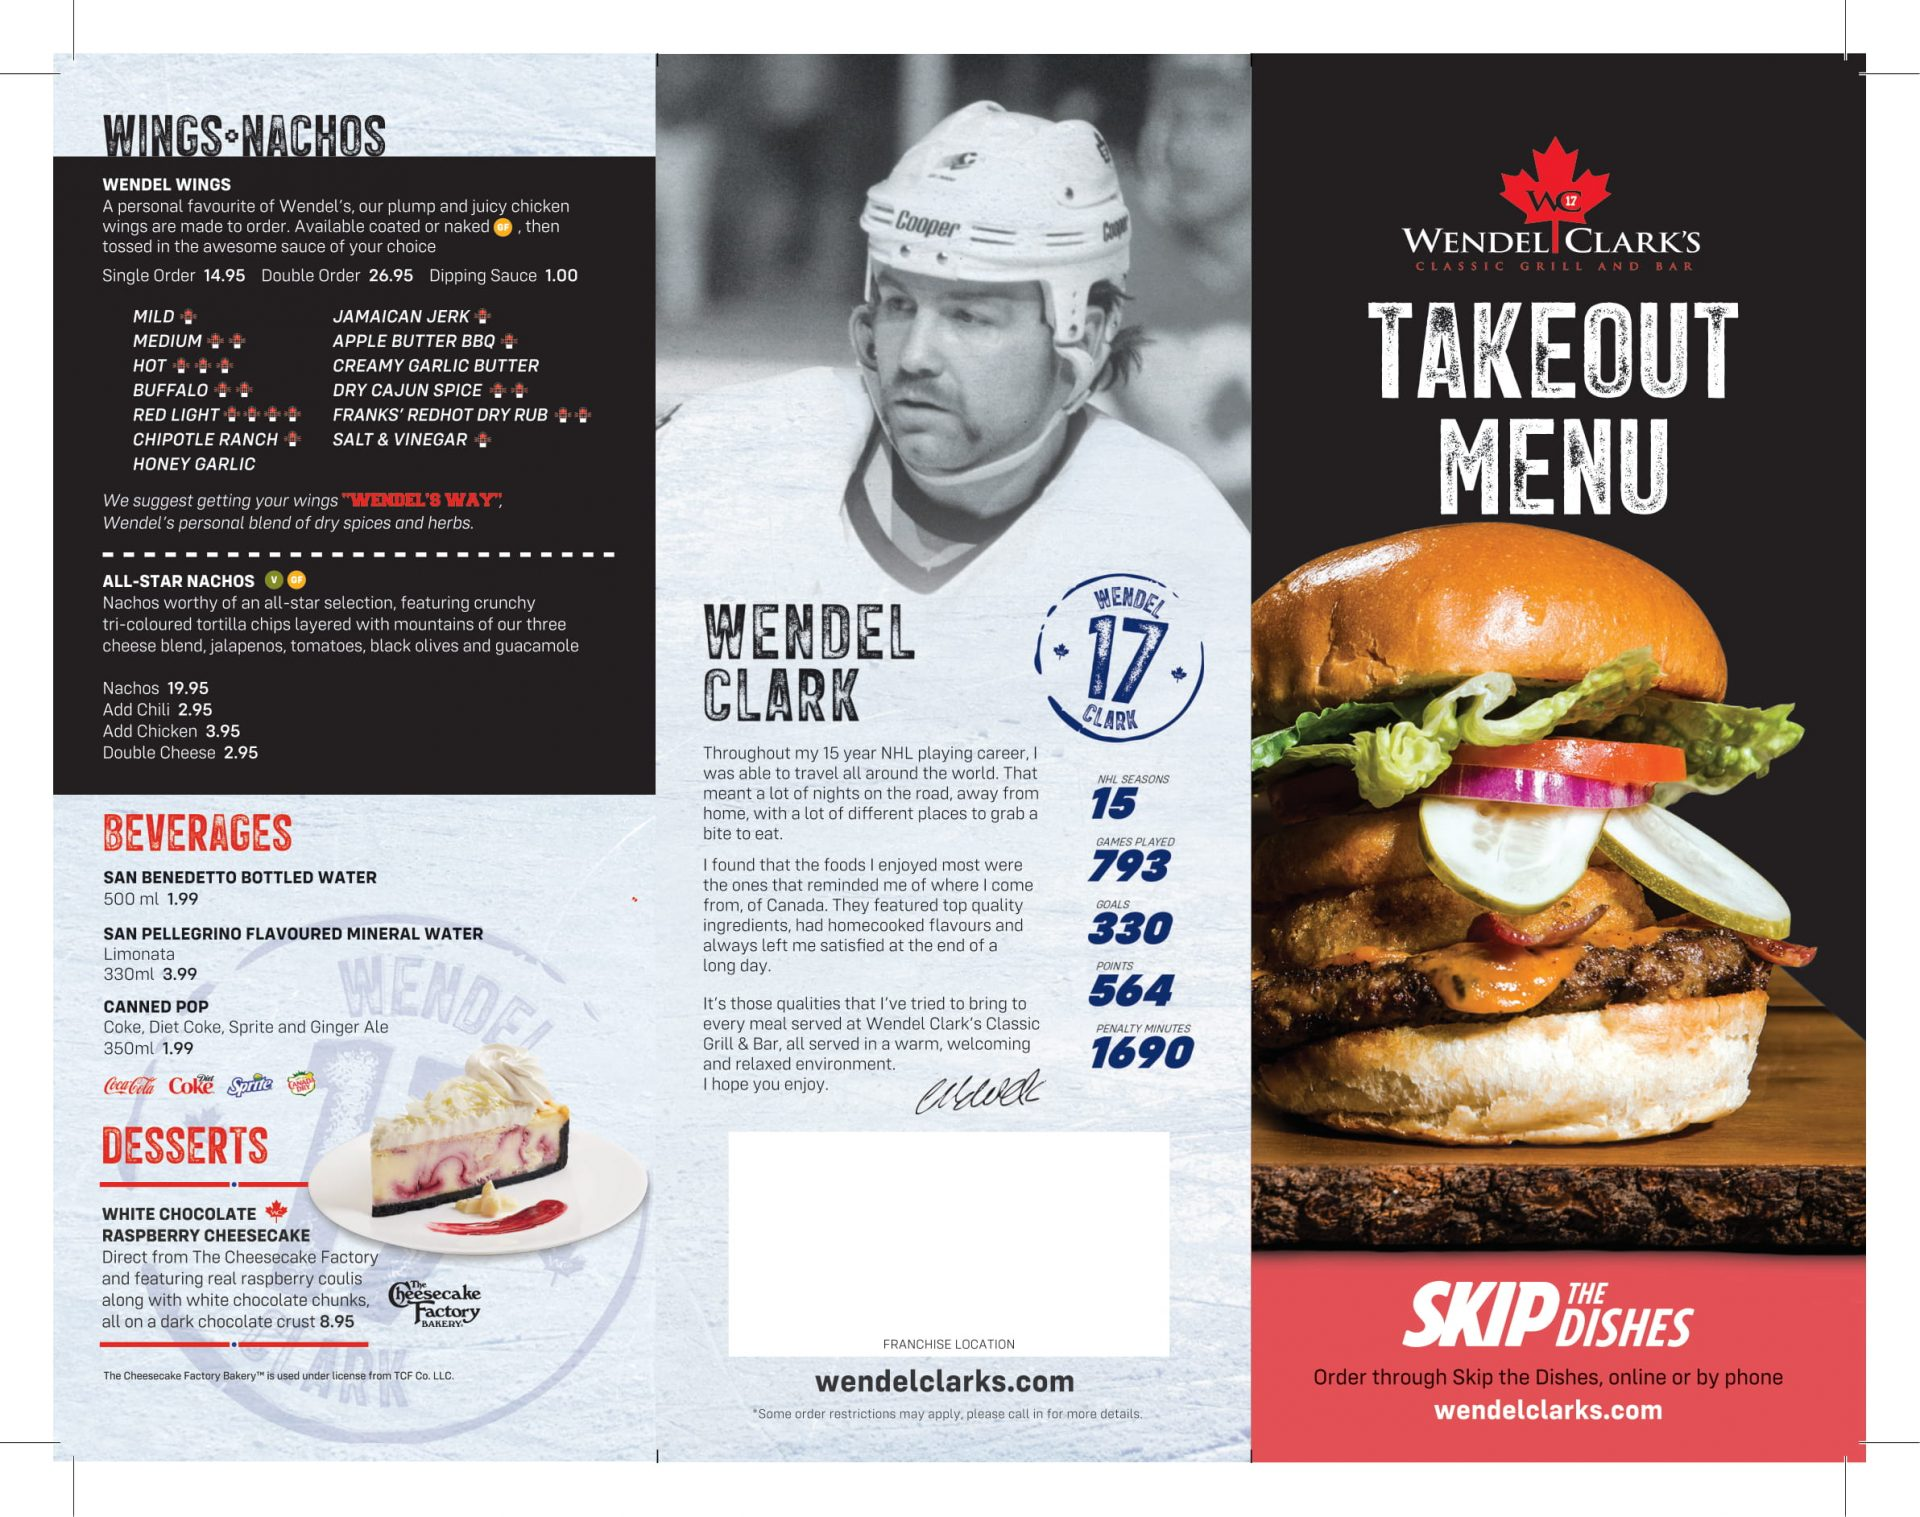 Take Out Menu - Page 1